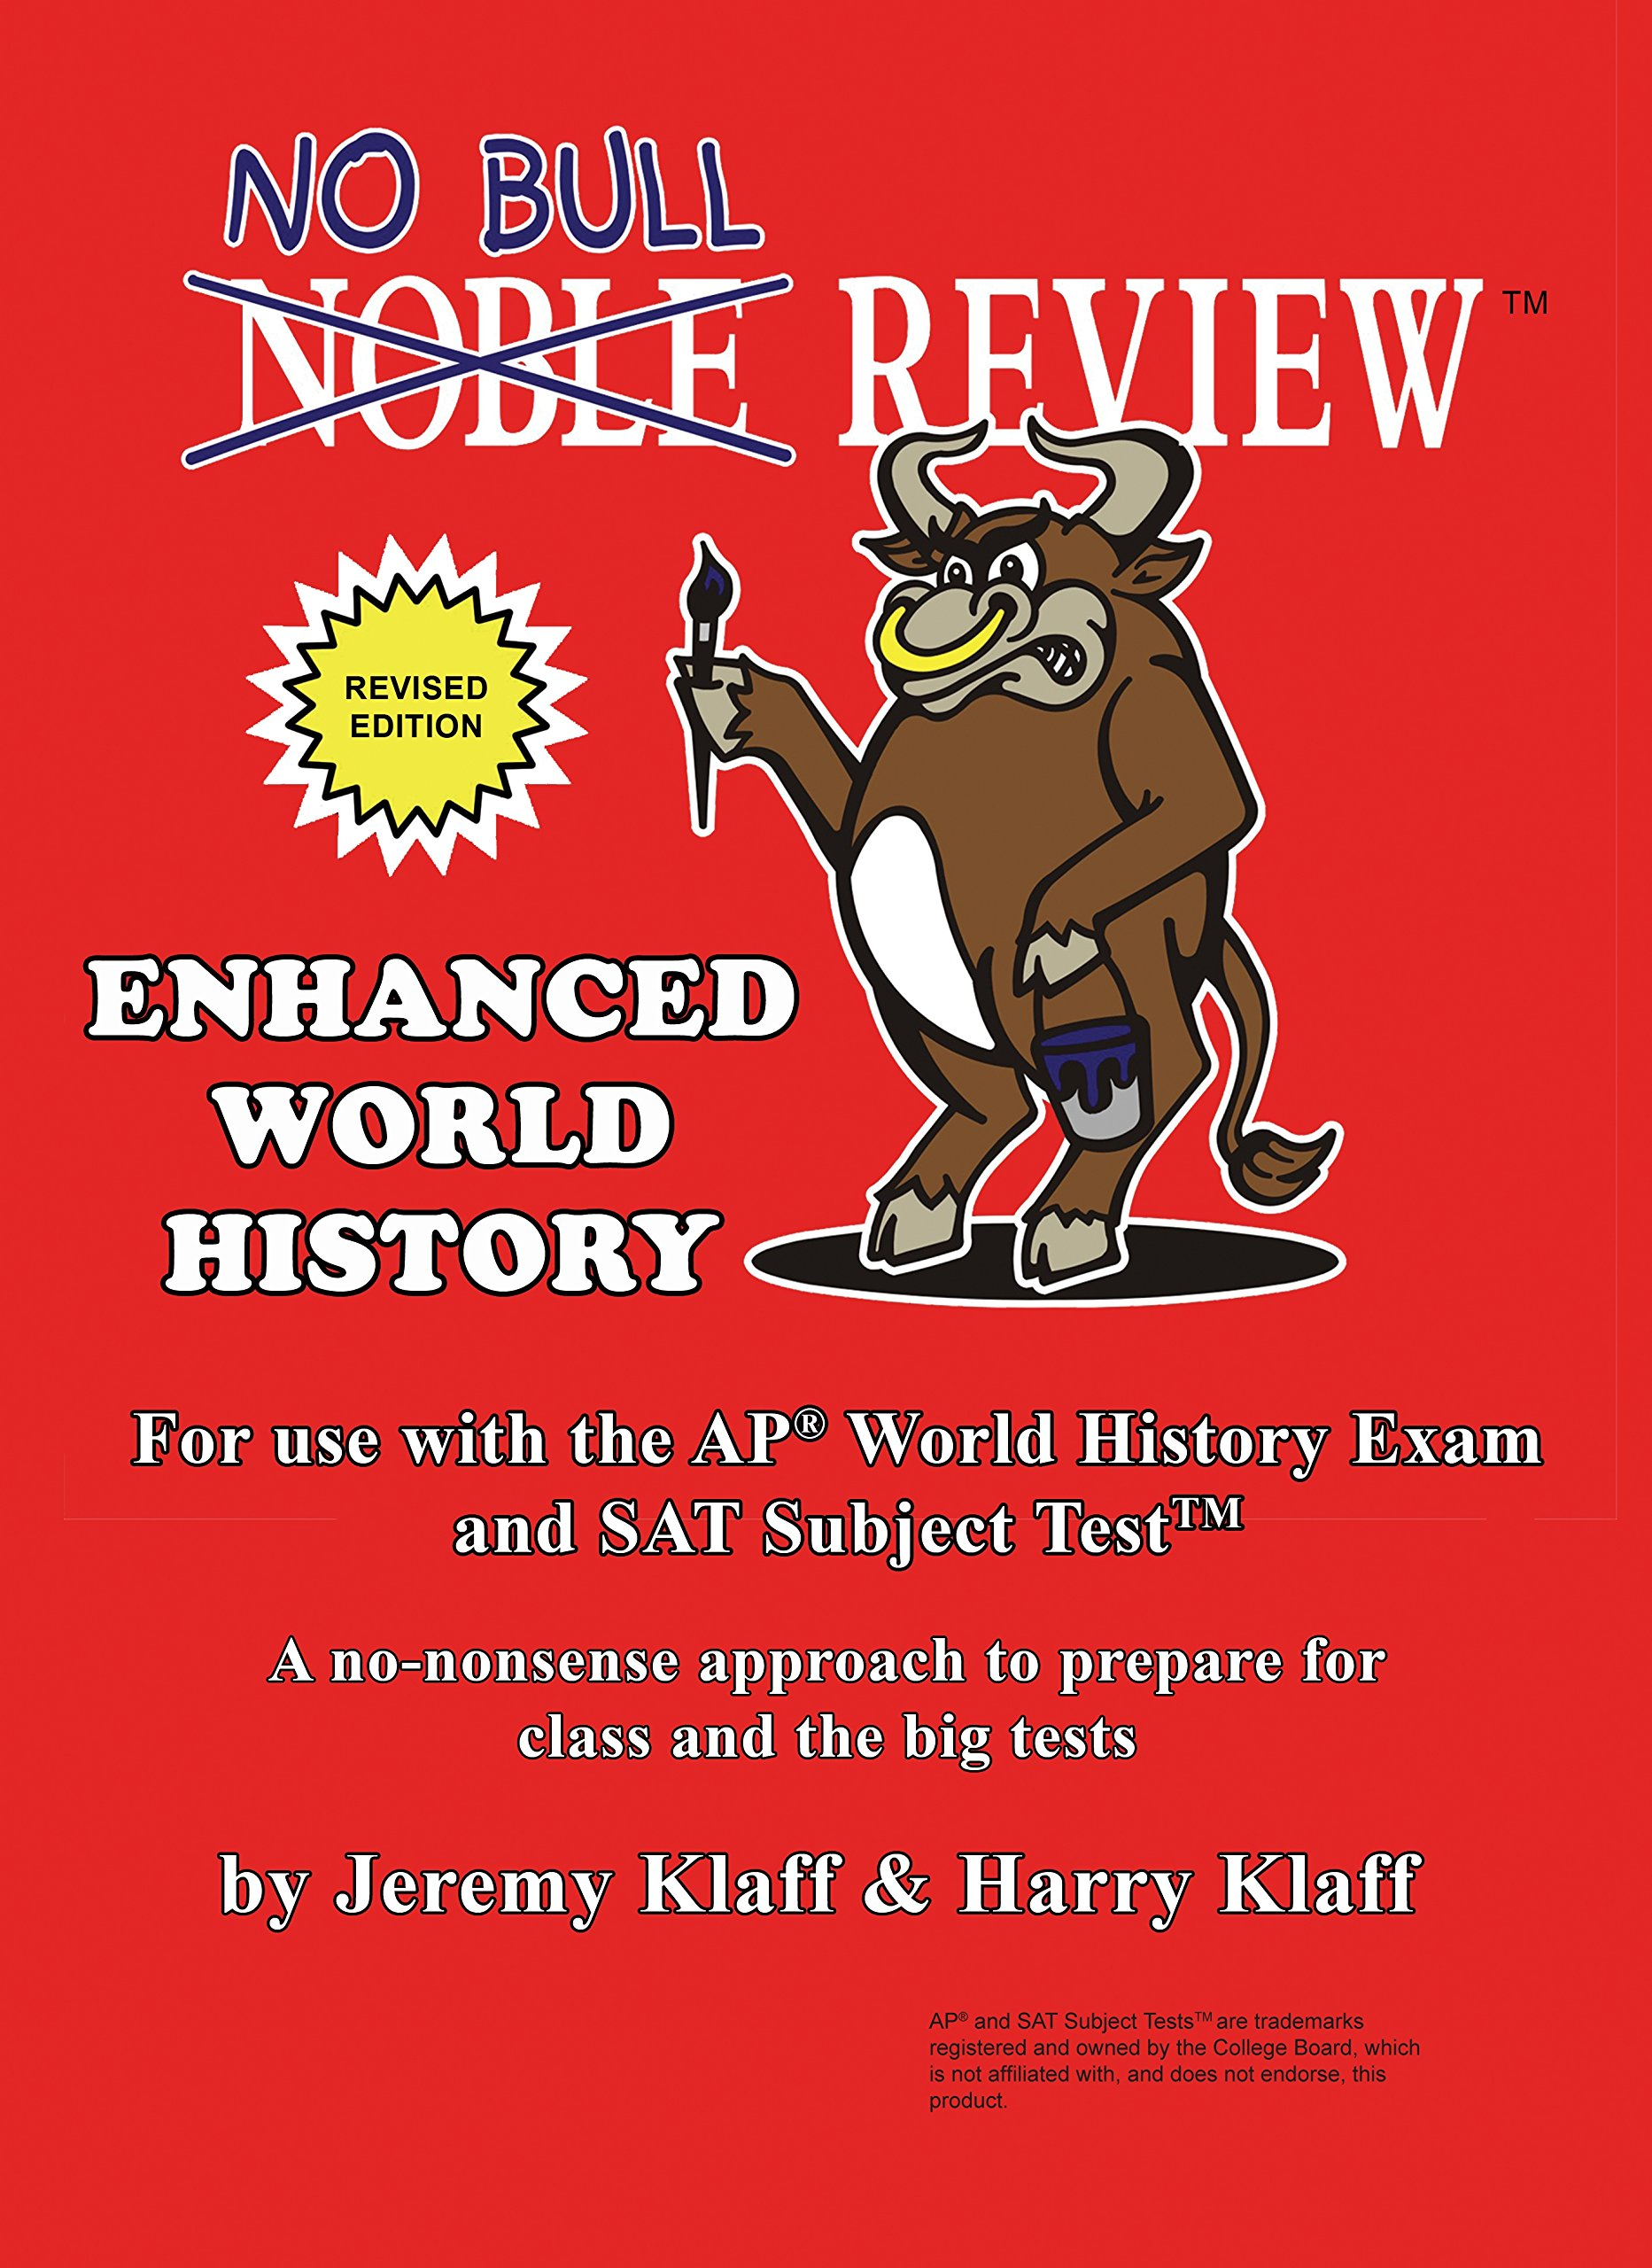 No Bull Review (2019 Edition) - For Use with the AP World History Exam and SAT Subject Test